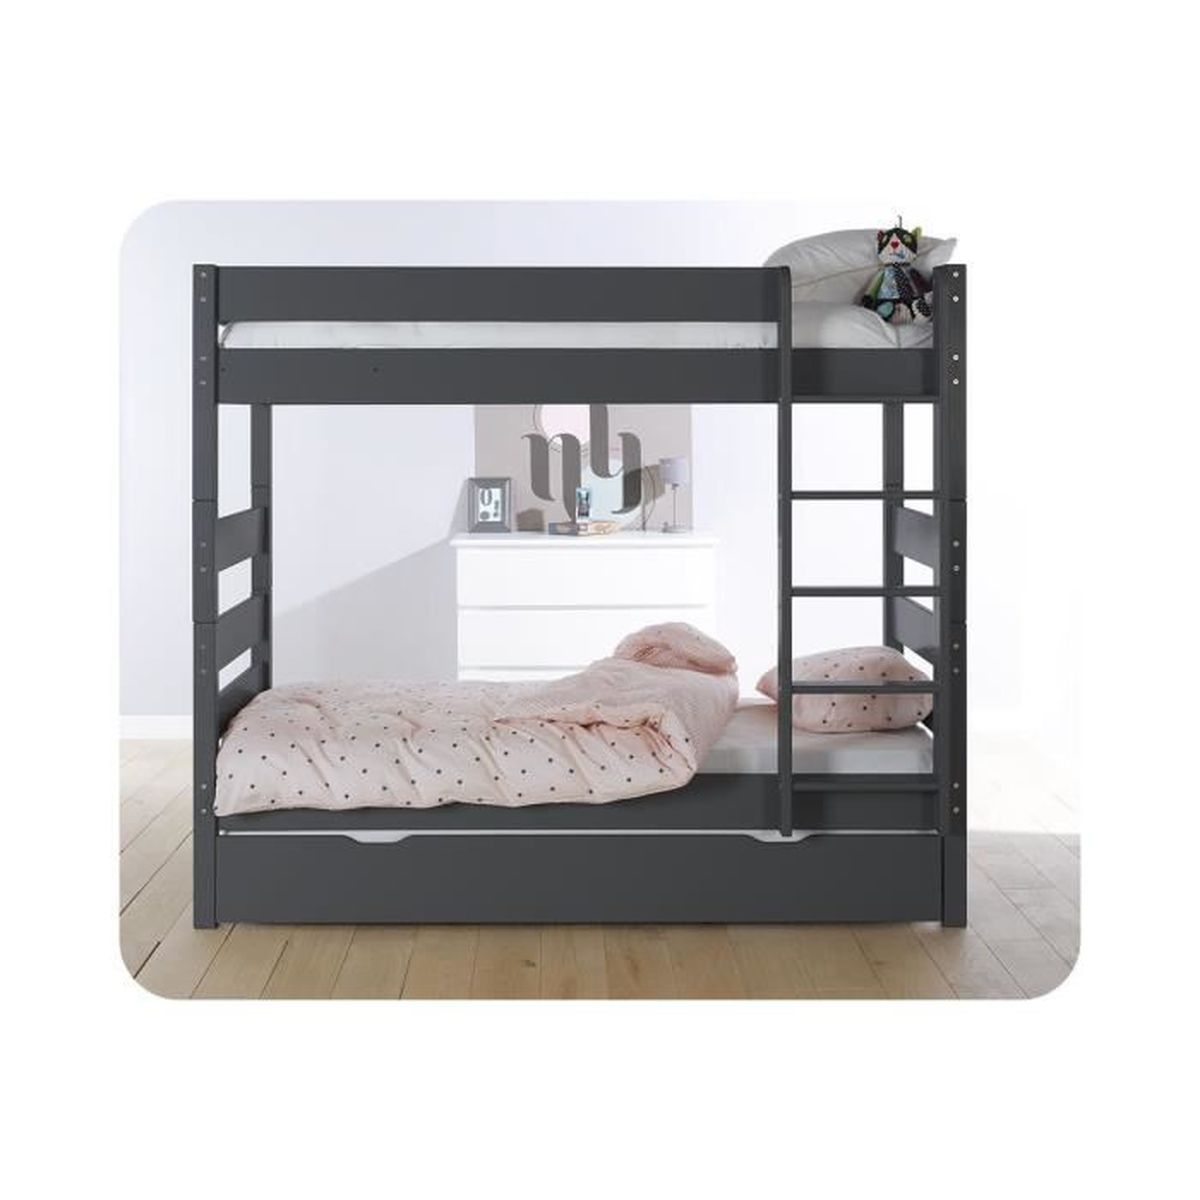 lit superpos kids avec sommier gigogne gris fonc achat vente lits superpos s lit superpos. Black Bedroom Furniture Sets. Home Design Ideas